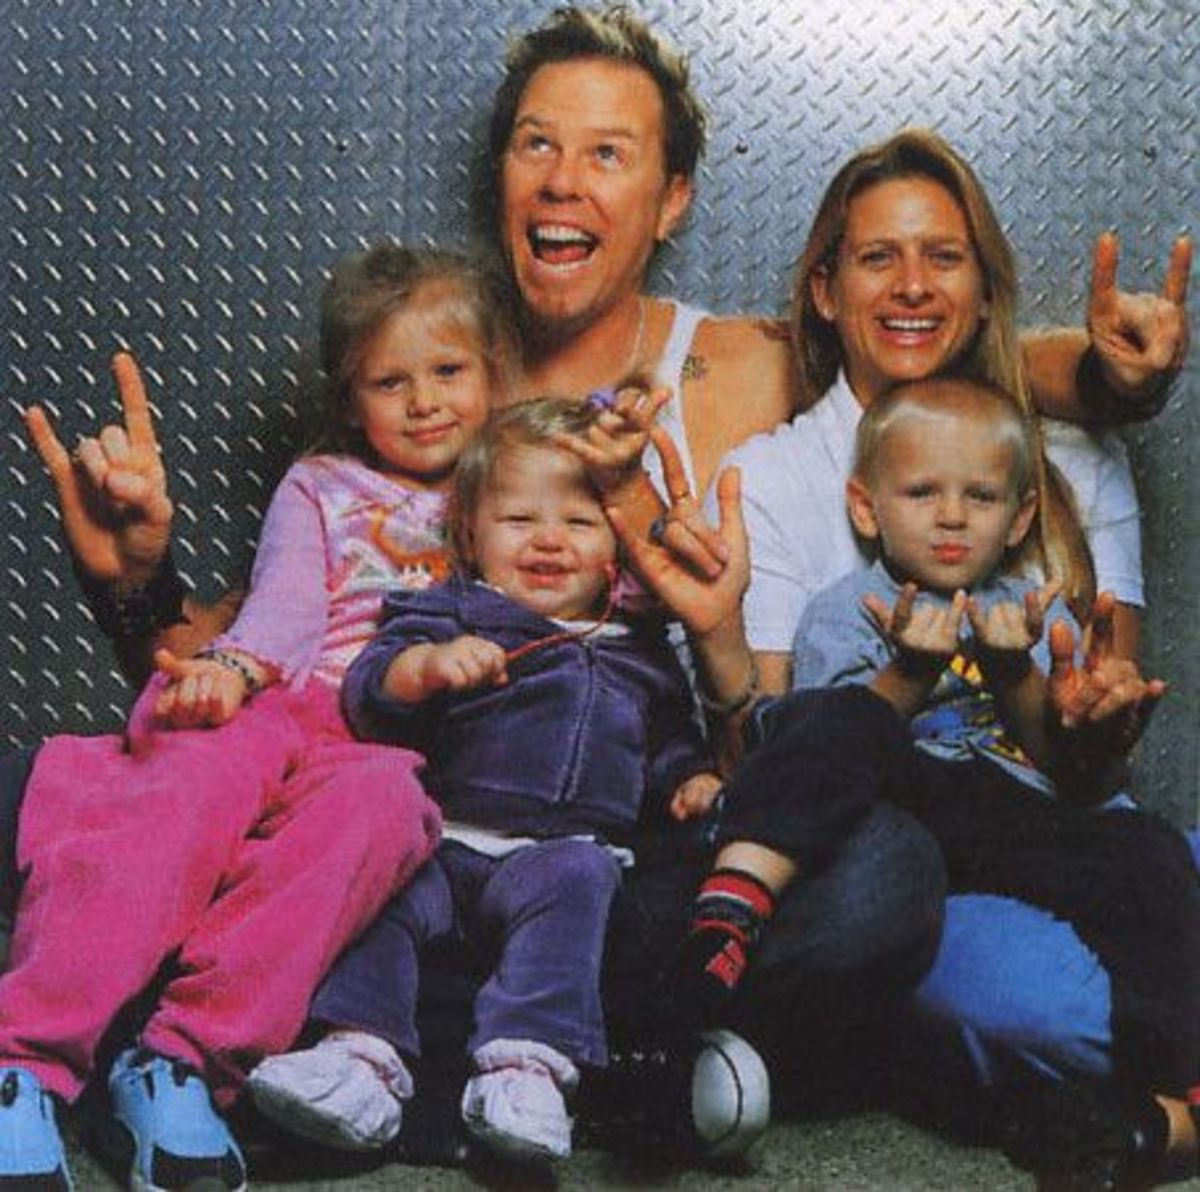 James Hetfield dearly loves his wife and children, and has shown it by changing his life and habits for the better.